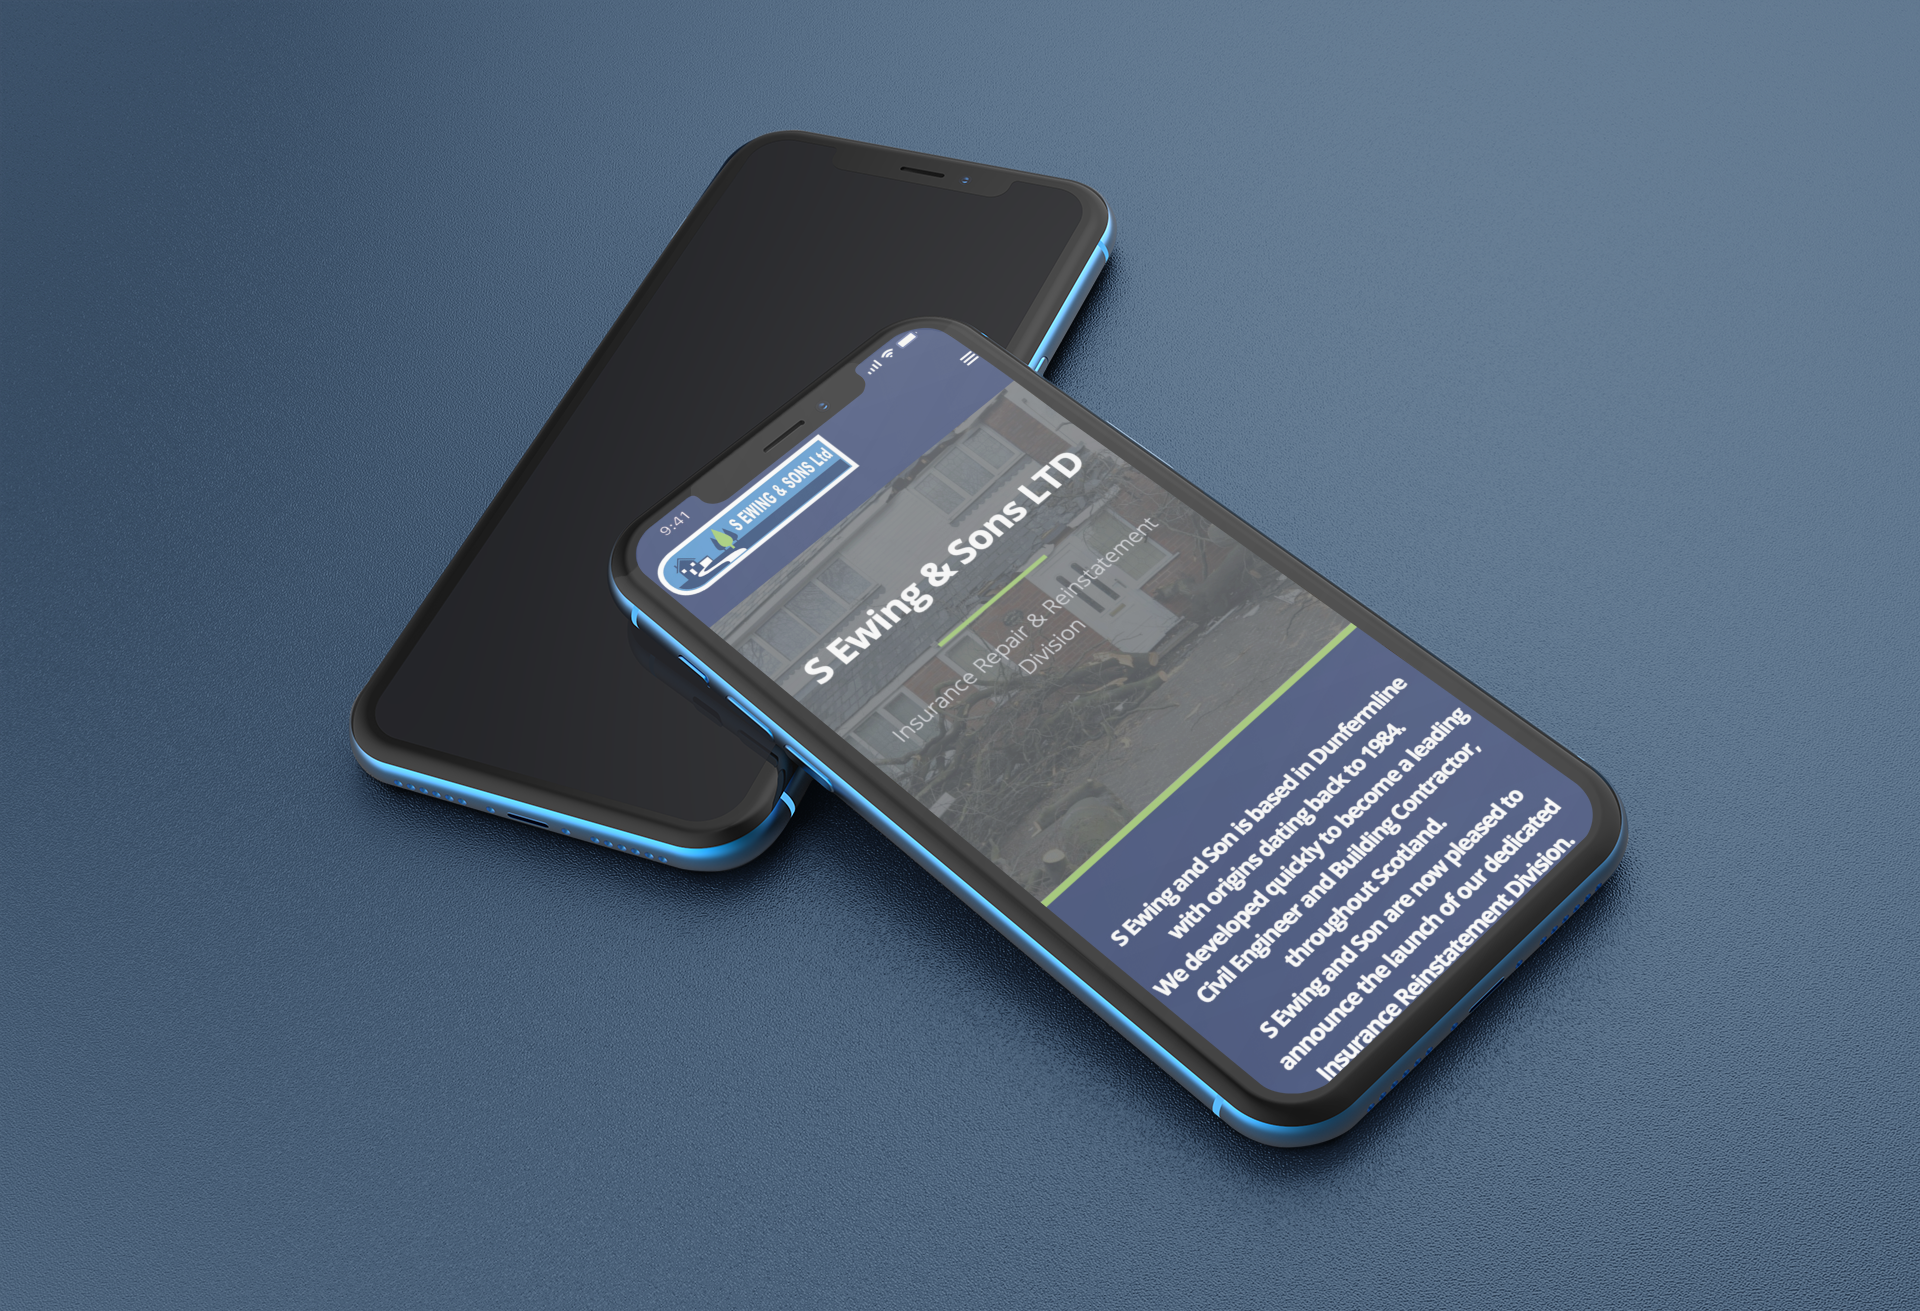 mockup-of-a-blue-iphone-xr-on-top-of-another-iphone-over-a-solid-surface-23128.png